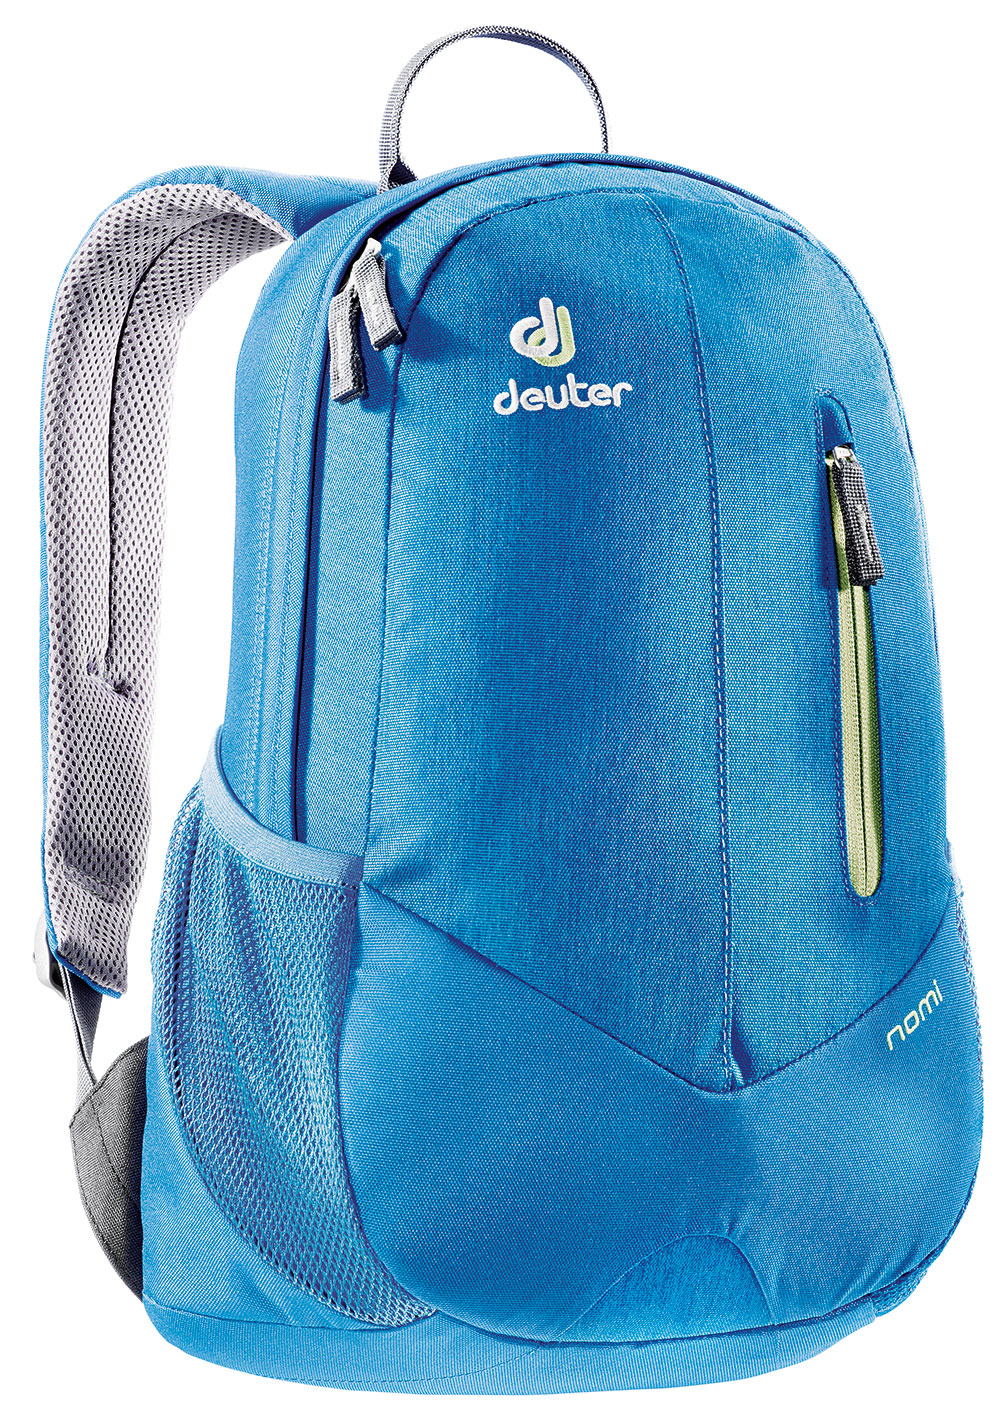 Deuter - Nomi bay dresscode - Daypacks -